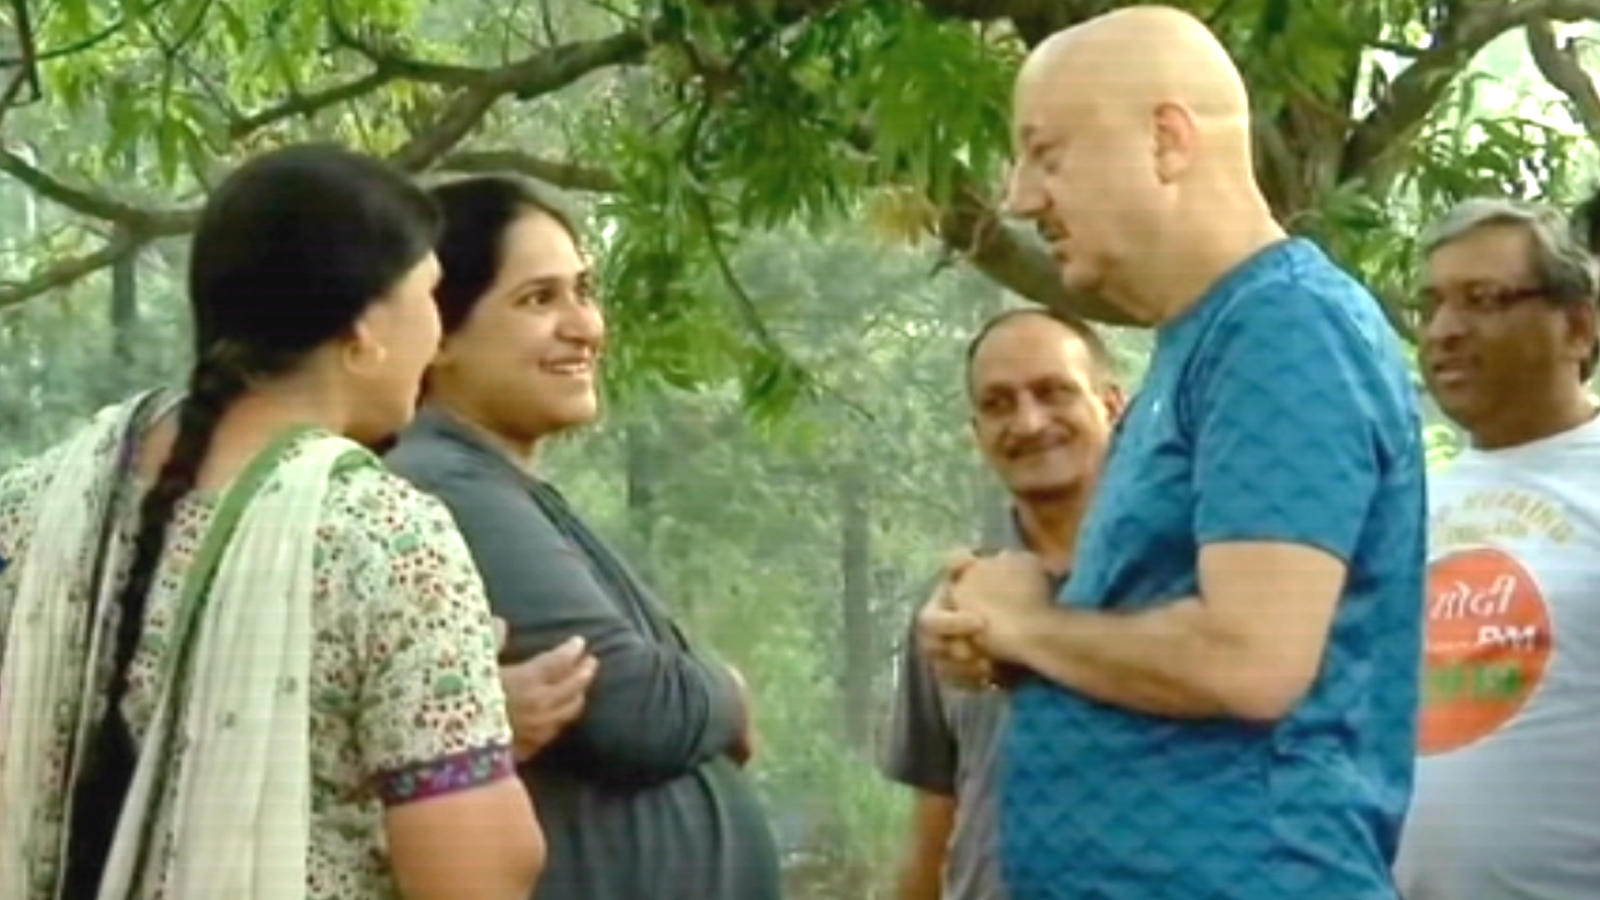 Actor Anupam Kher campaigns for wife Kirron Kher in Chandigarh